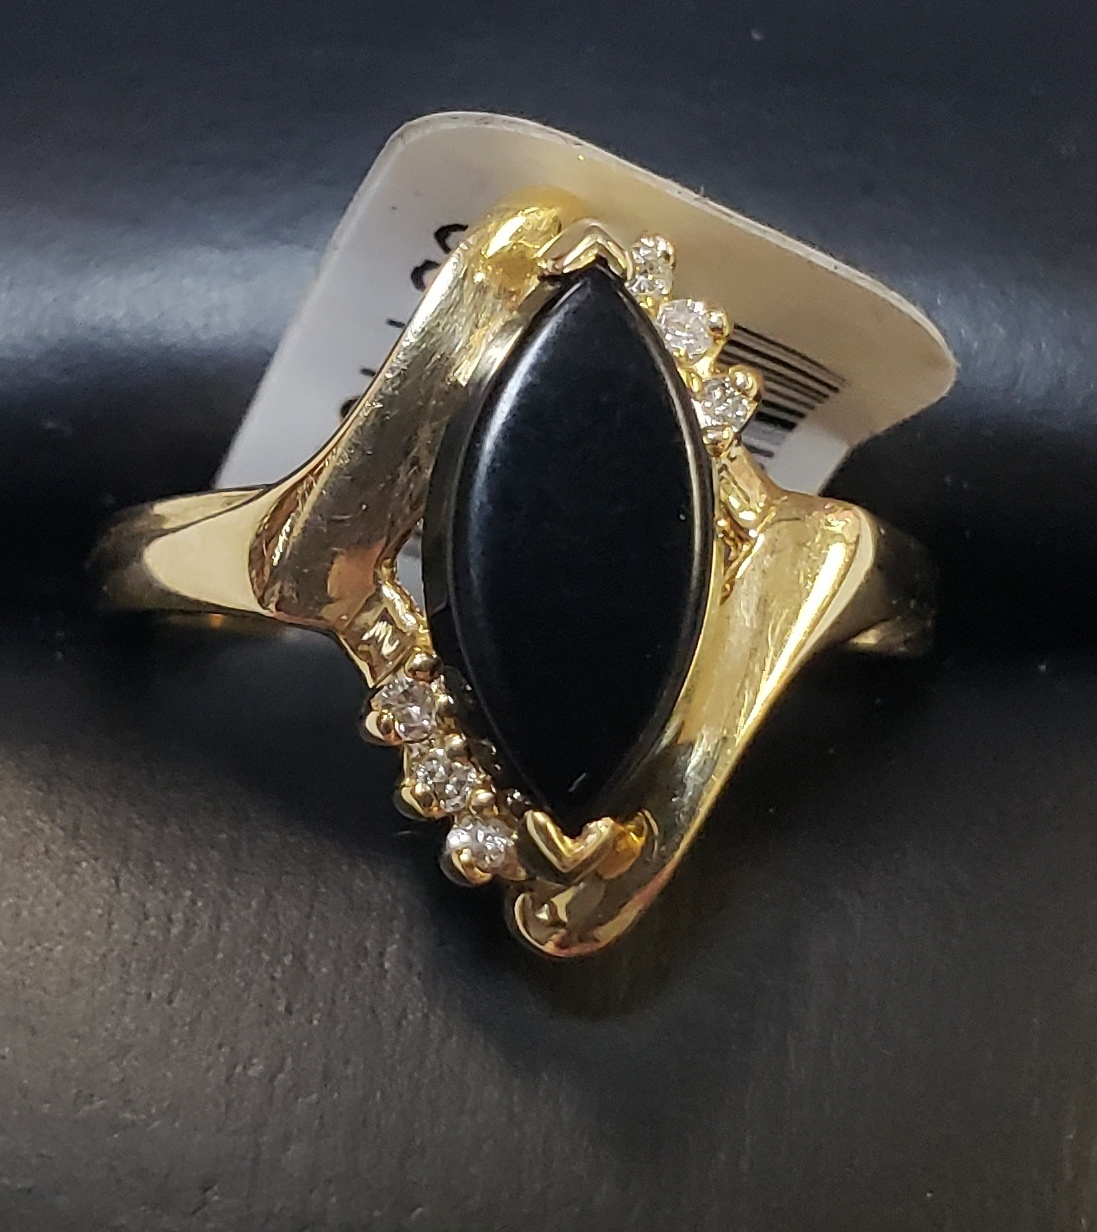 14KT - YELLOW GOLD - SIZE 5.5 - MARQ ONYX STONE W/ DIAMOND CHIPS RING